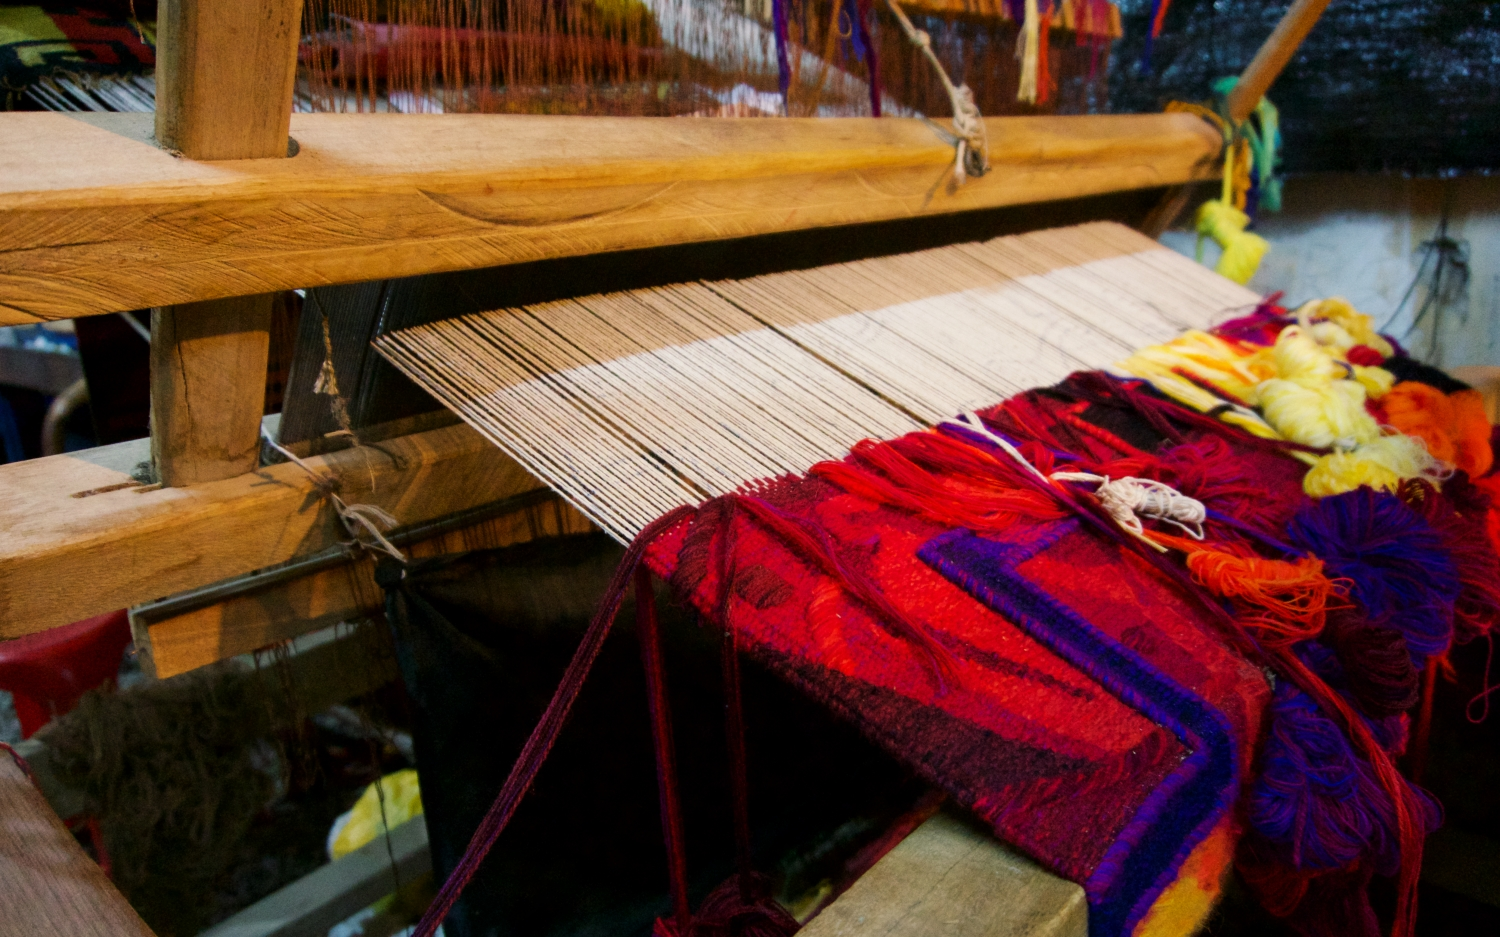 A wooden weaving loom the families used to produce rugs for sale.